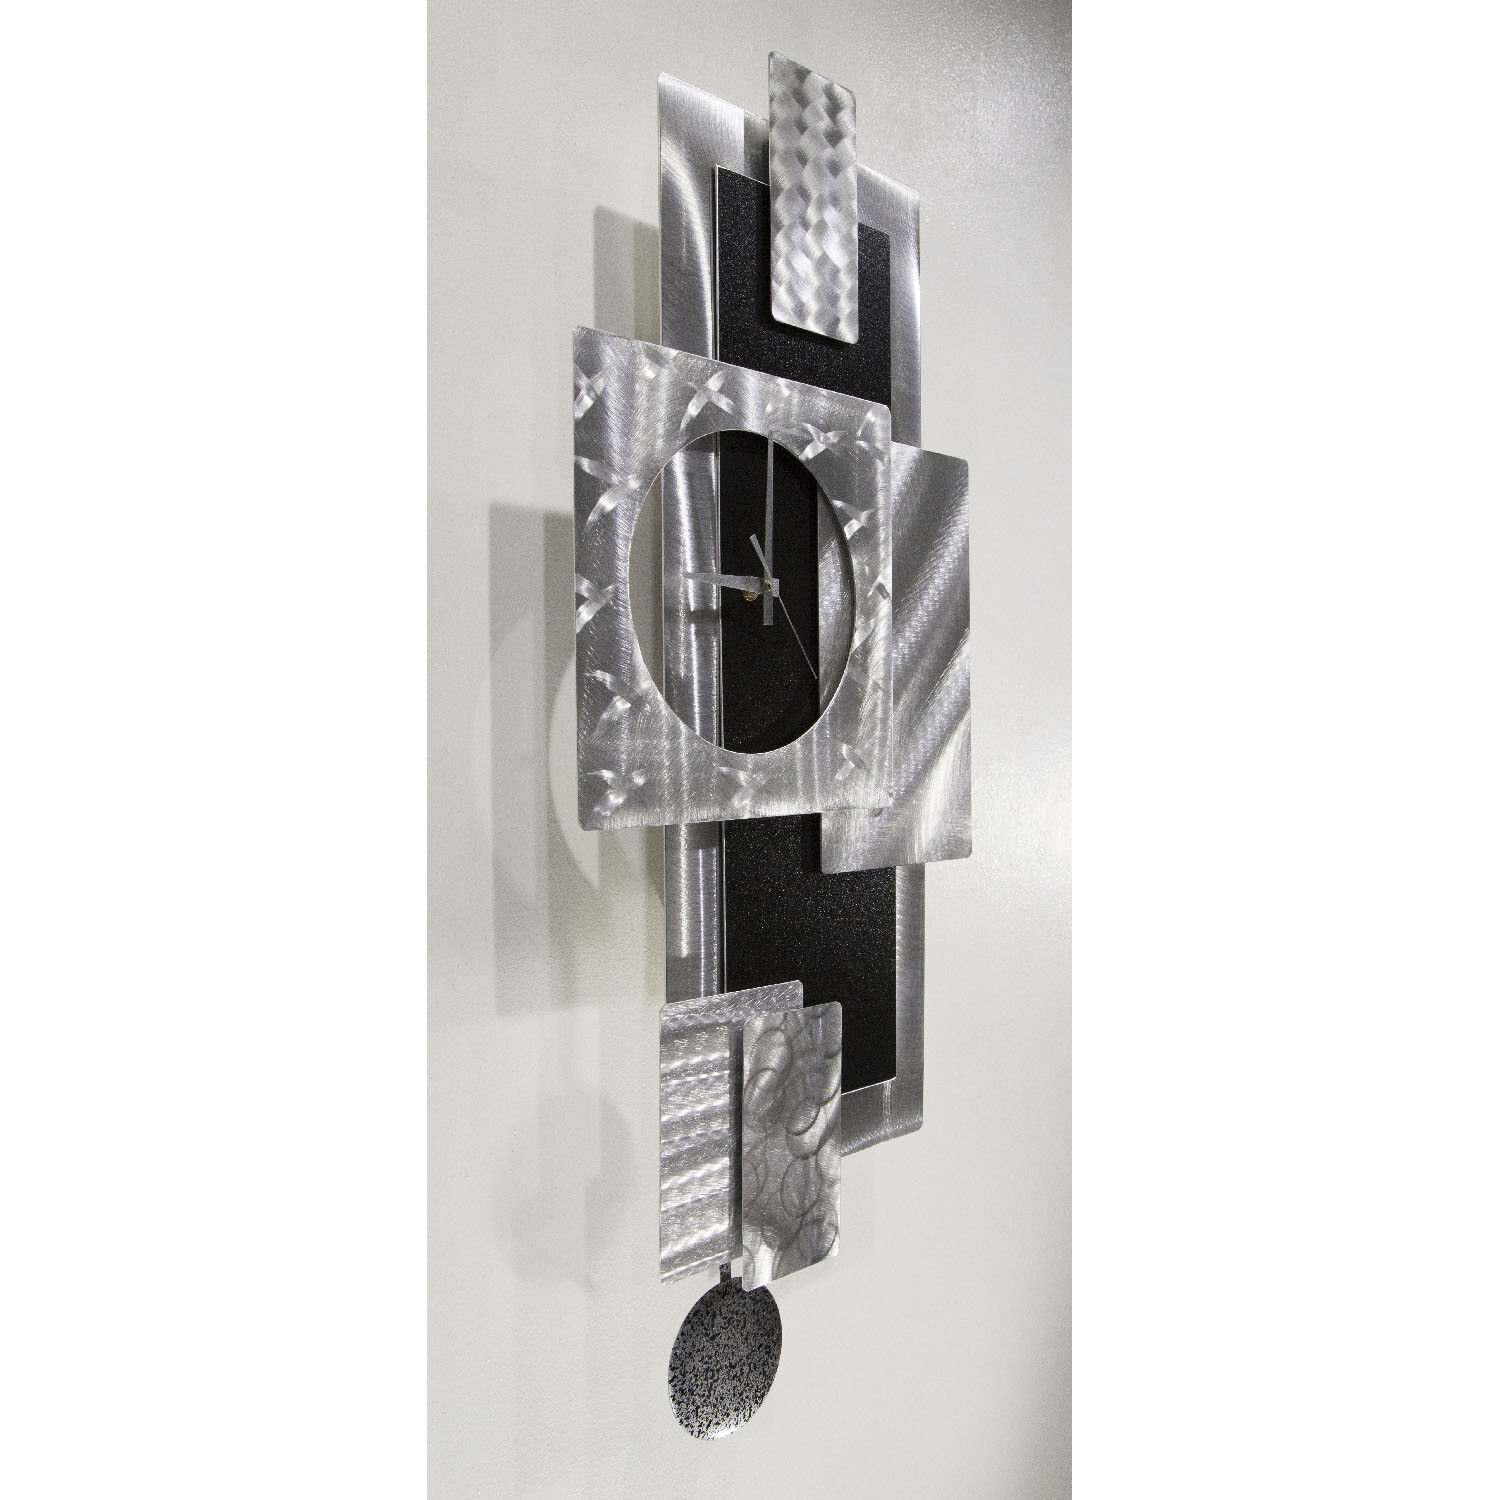 Statements2000 3D Metal Wall Clock Art Modern Silver Black Decor by Jon Allen